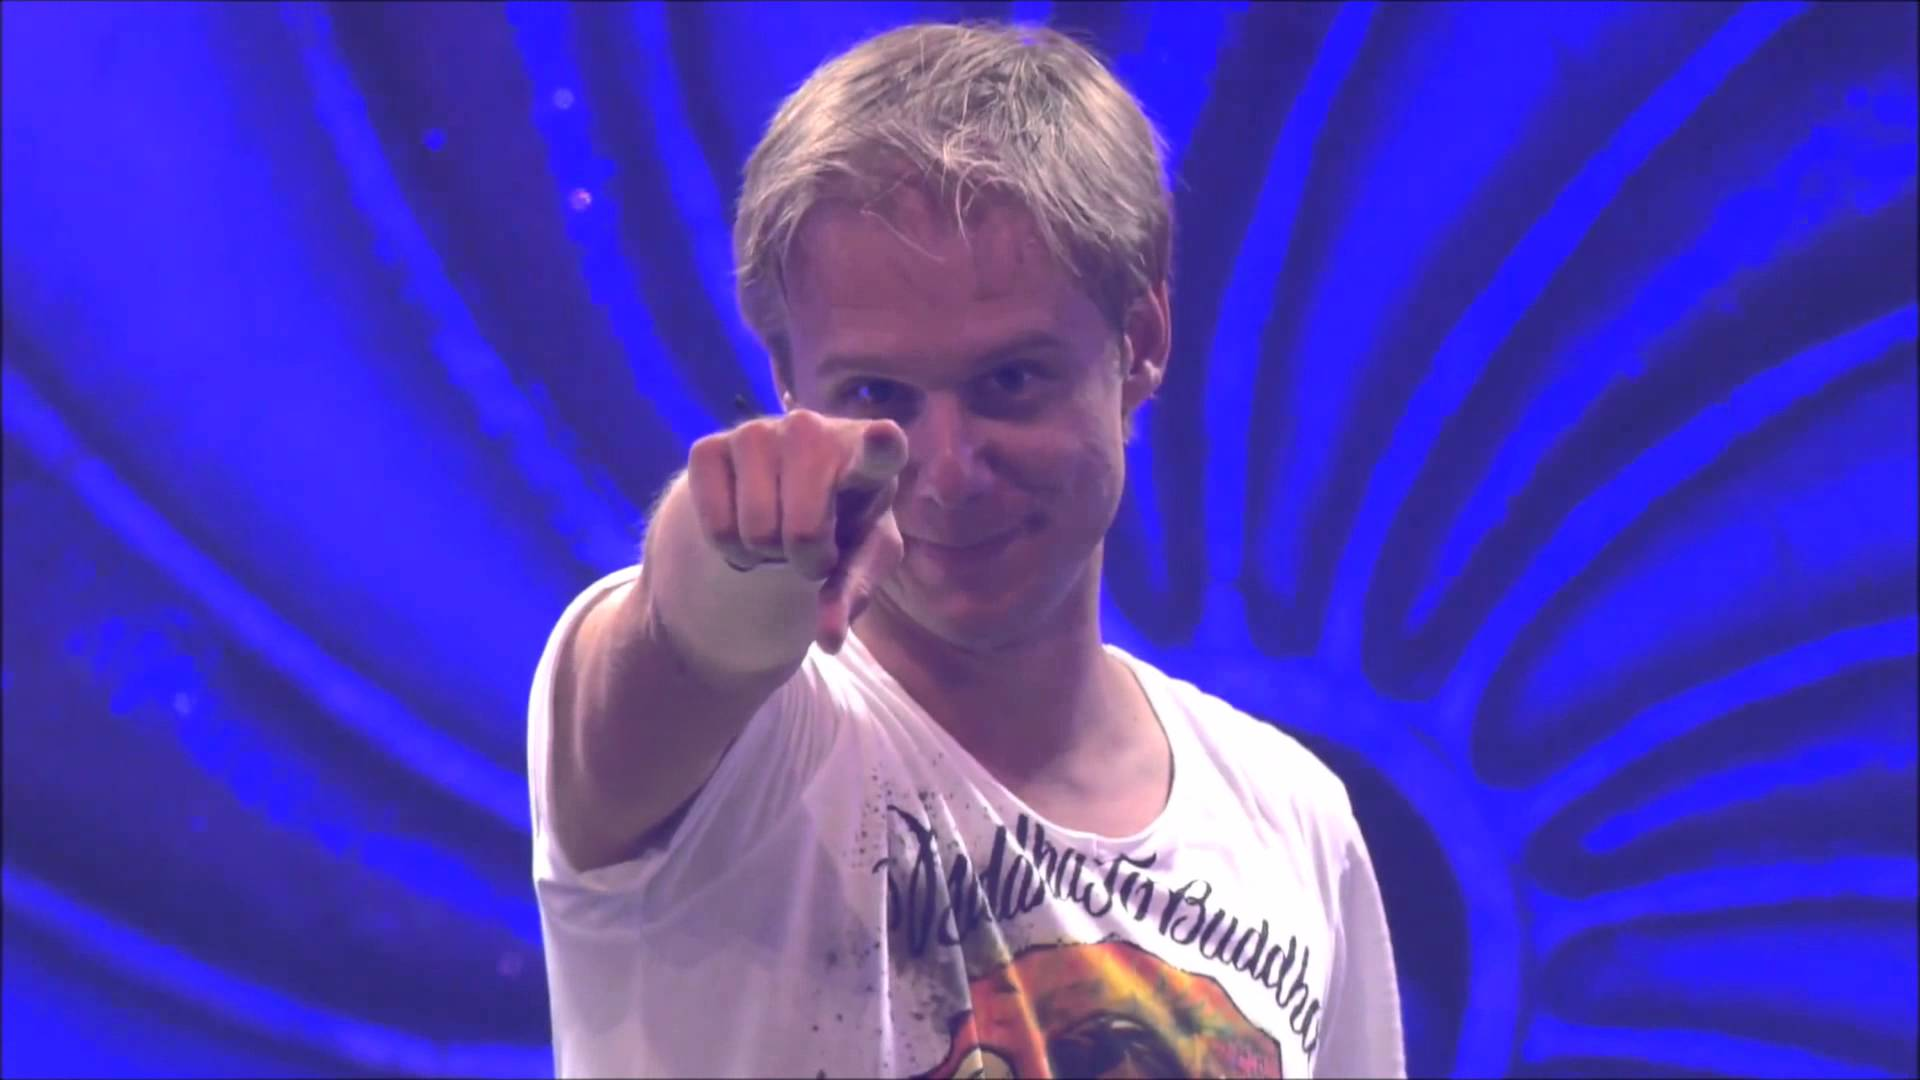 Armin van Buuren Net Worth